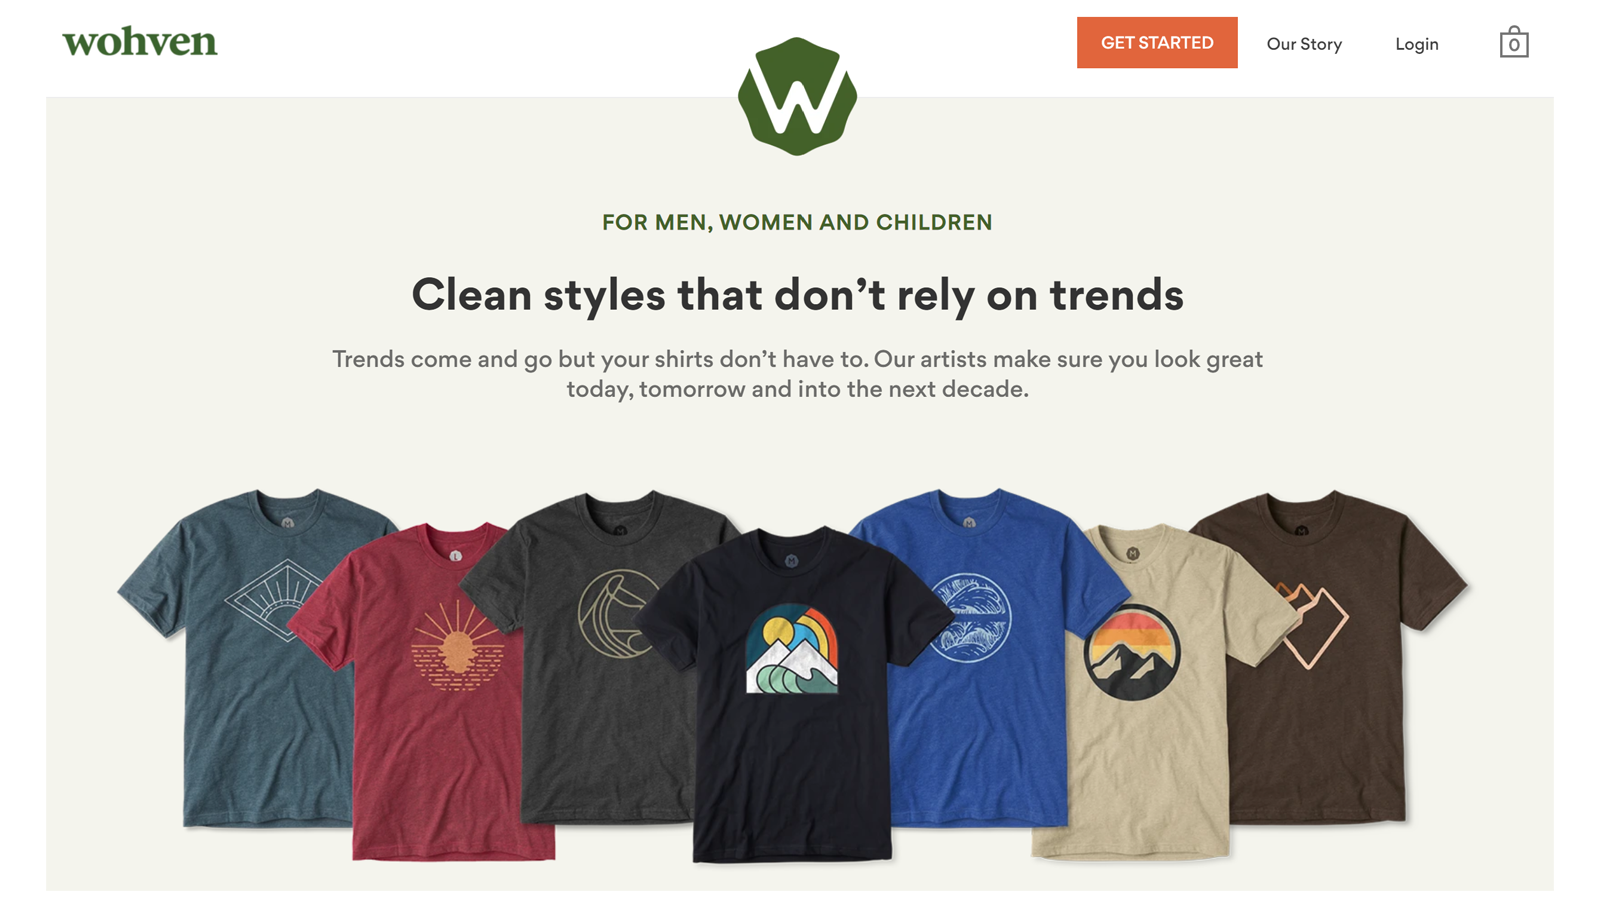 Wohven monthly tshirt subscription service plain tees and graphic tees